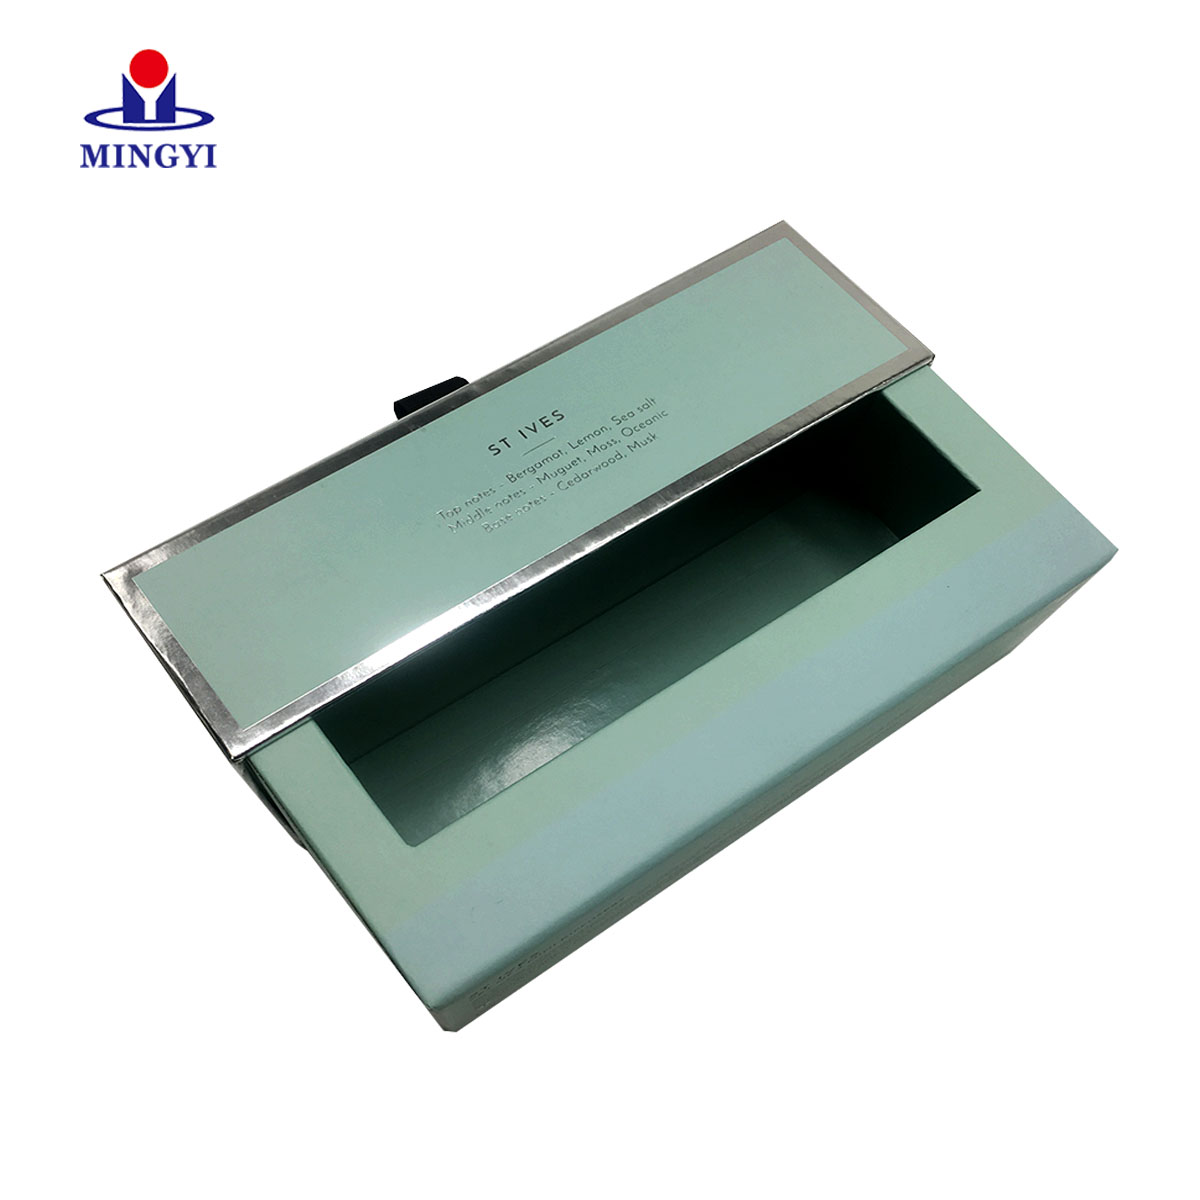 China manufacturer low price good quality thc testing equipment tester test strip Made In